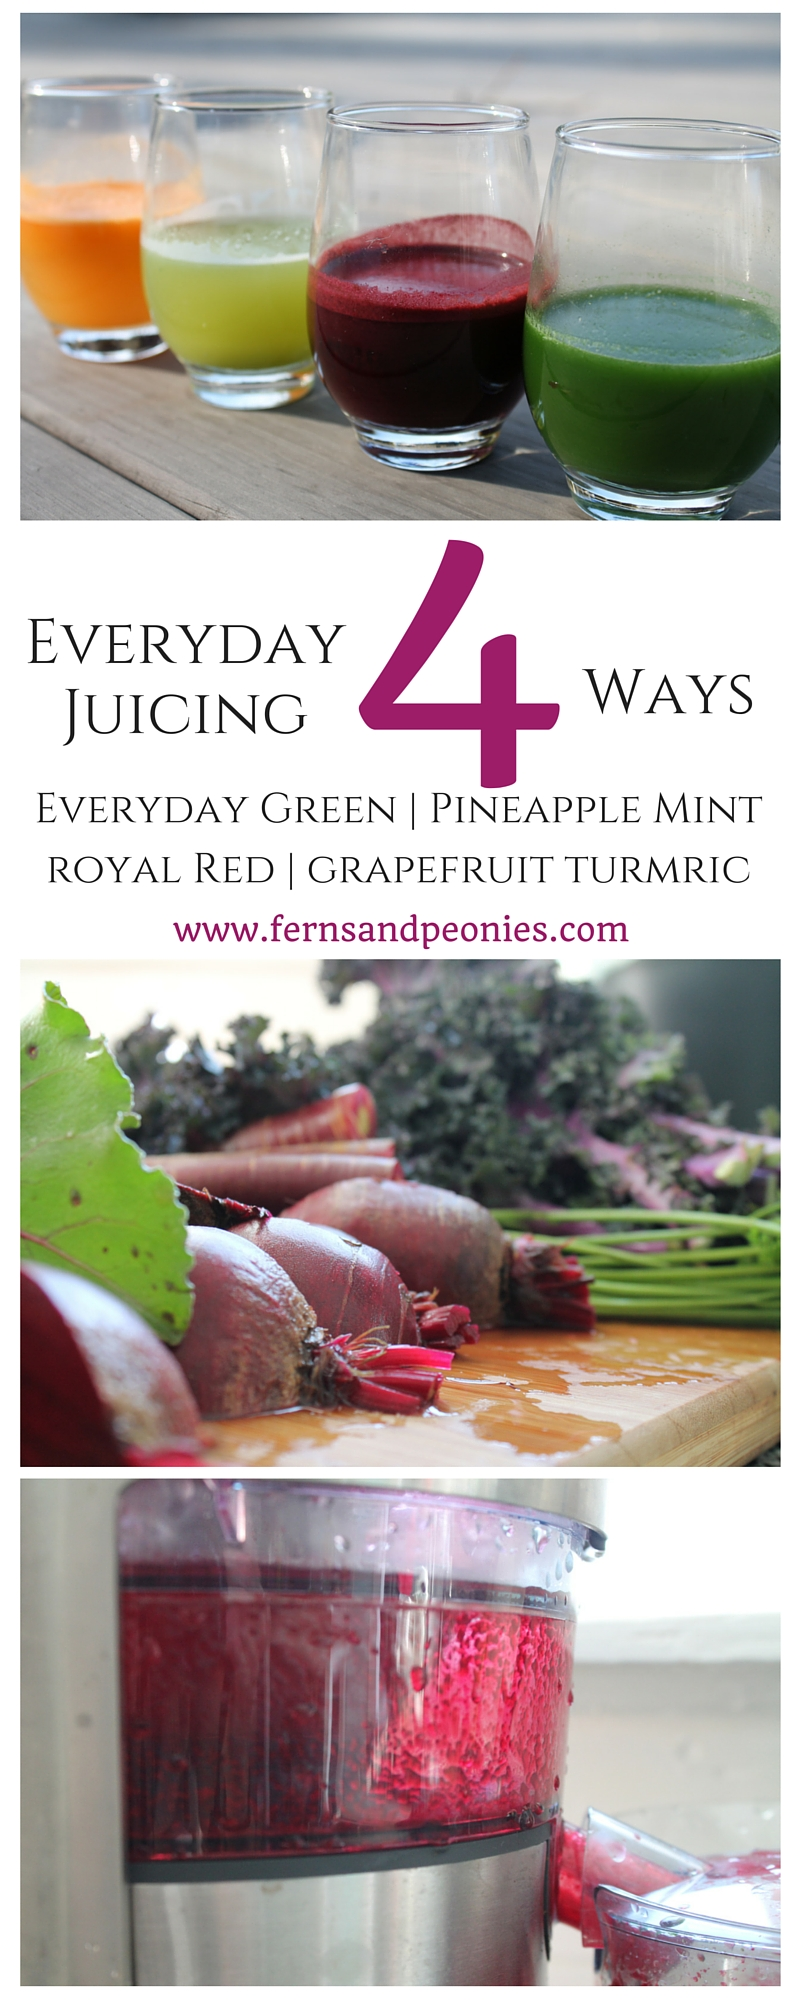 Everyday Juicing - 4 delicious and nutritious recipes. Everyday Green, Pineapple Mint, Royal Red, and Grapefruit Turmeric. Healthy Me. Healthy You. www.fernsandpeonies.com